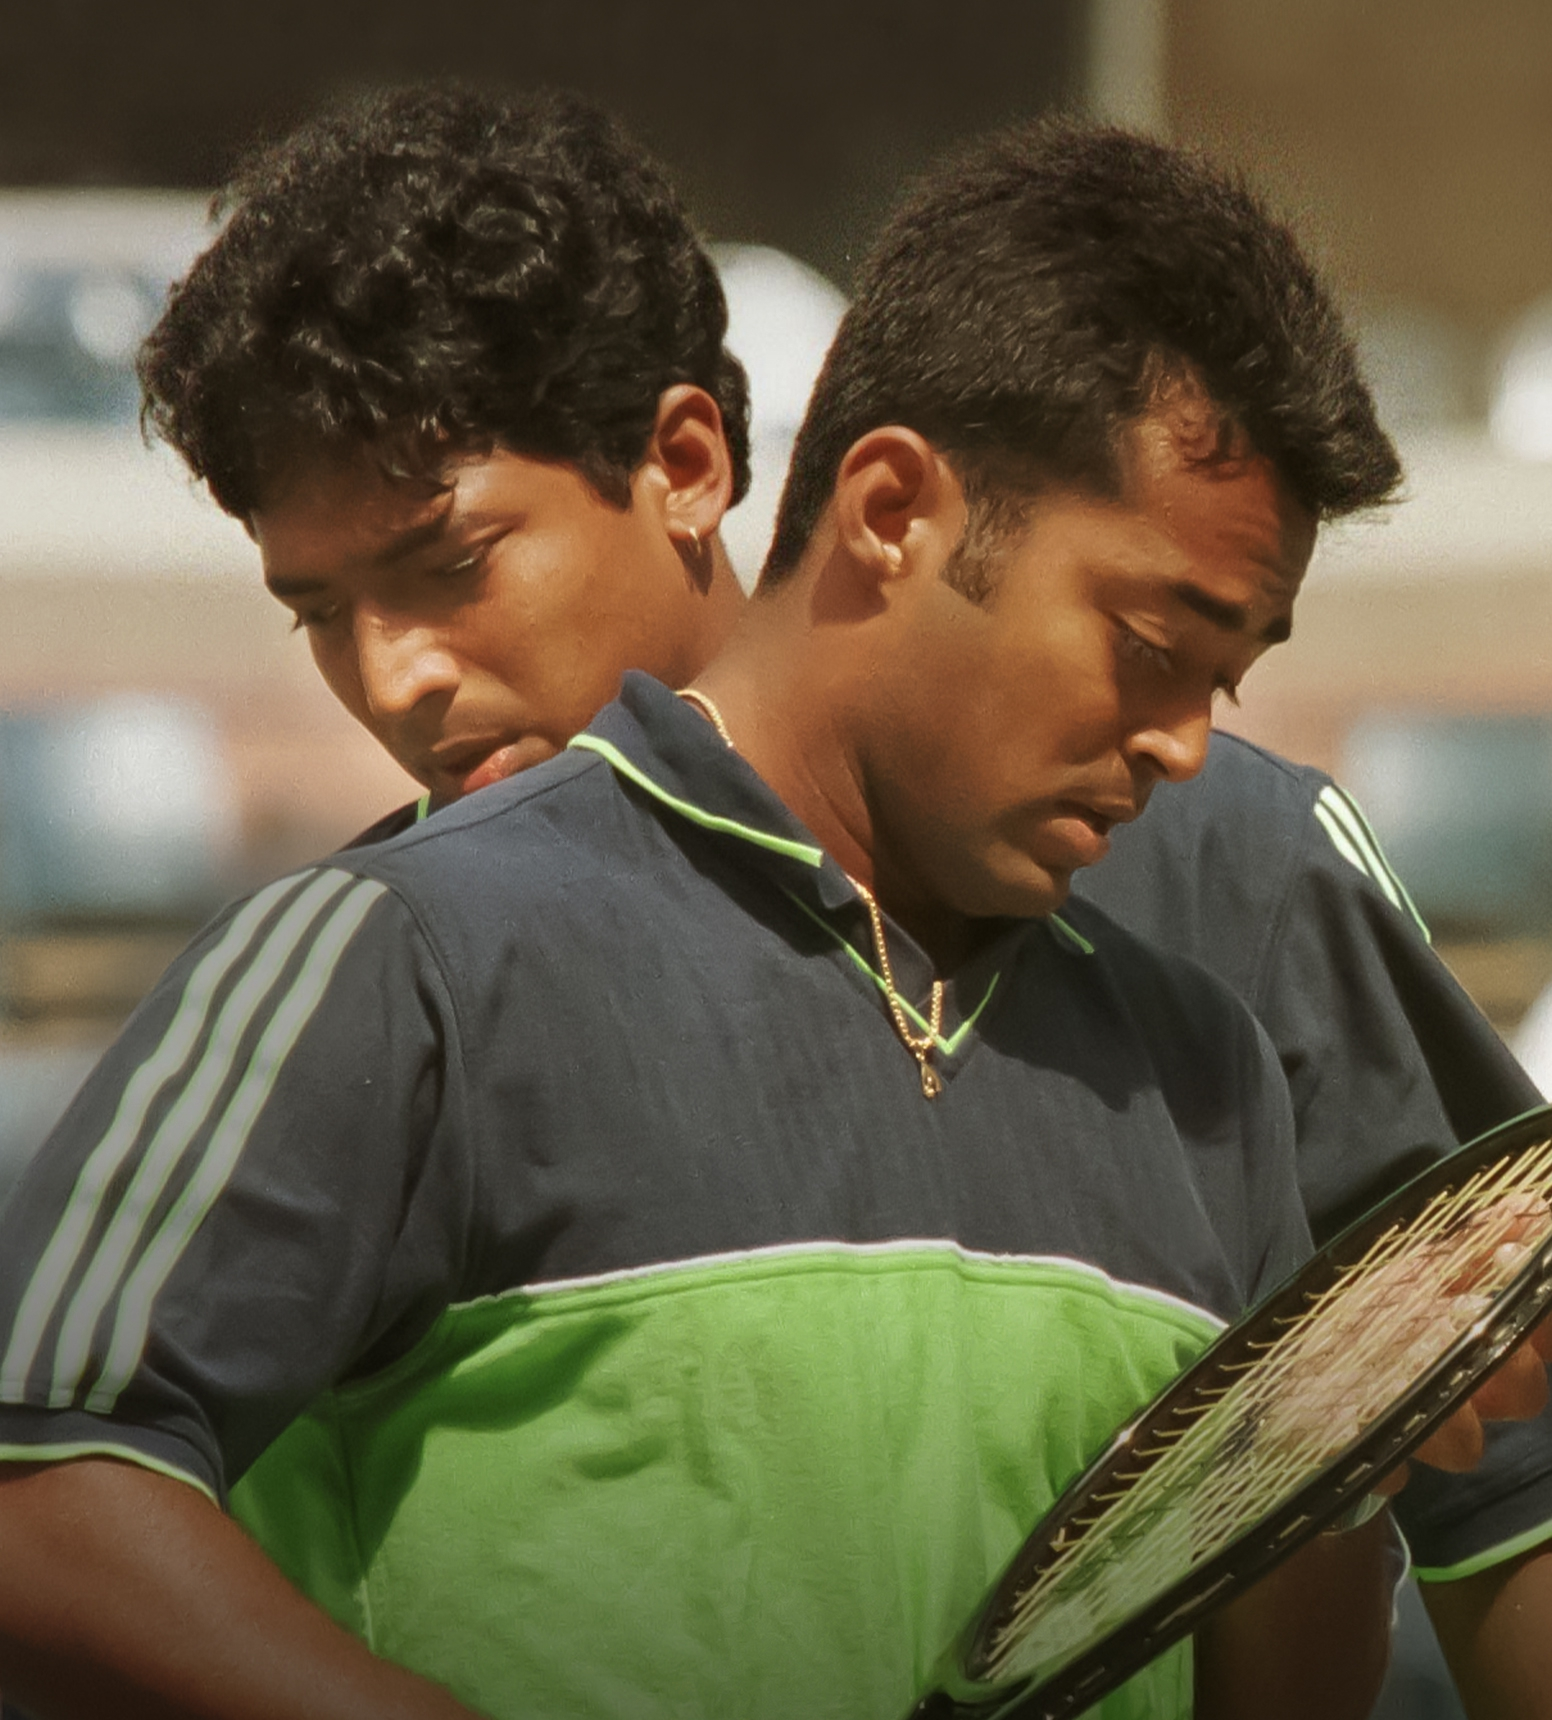 The Tiwaris' showcase the similarities as well as the differences between Leander and Mahesh in a compelling narrative